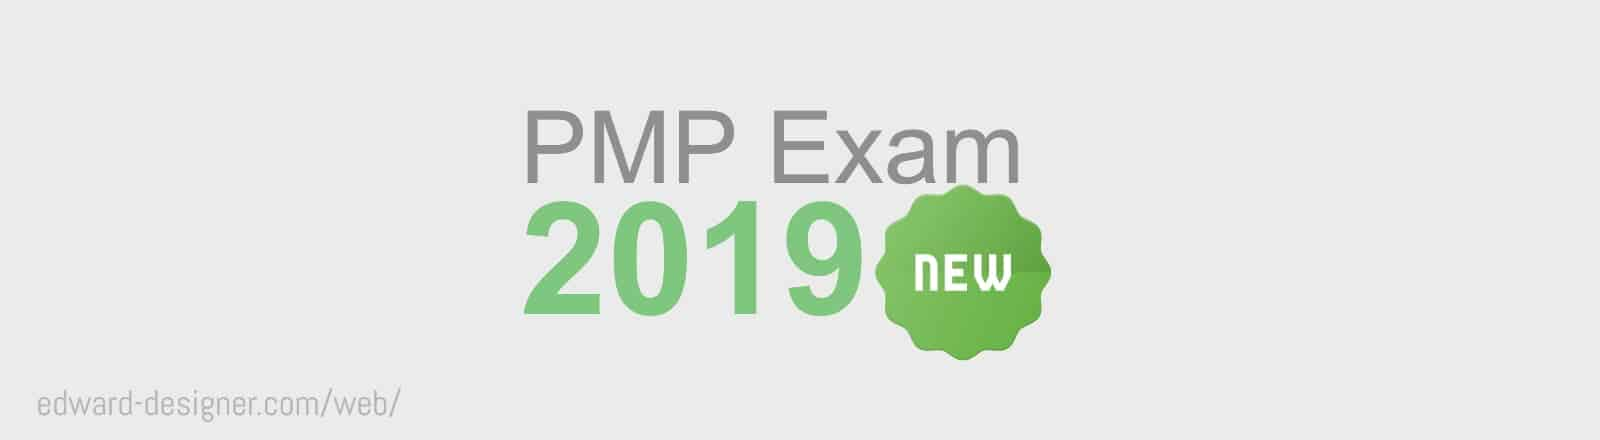 [Just Updated] What to Do to Prepare for the New PMP Exam in 2020?